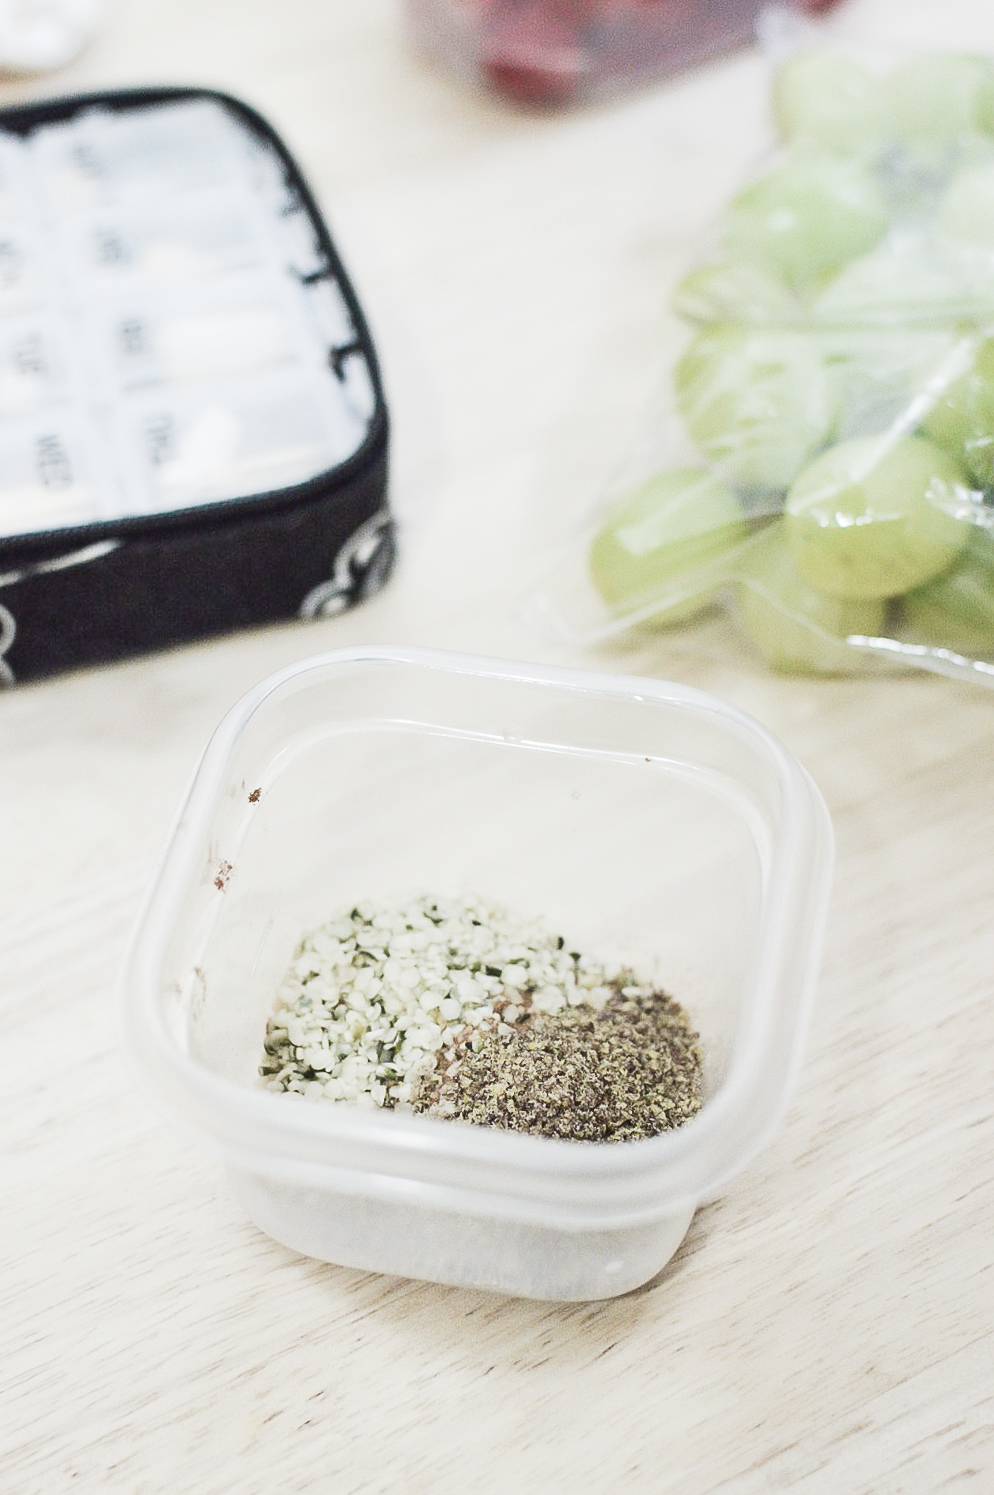 5 Things You're Not Meal Prepping, But Should: Add-Ons